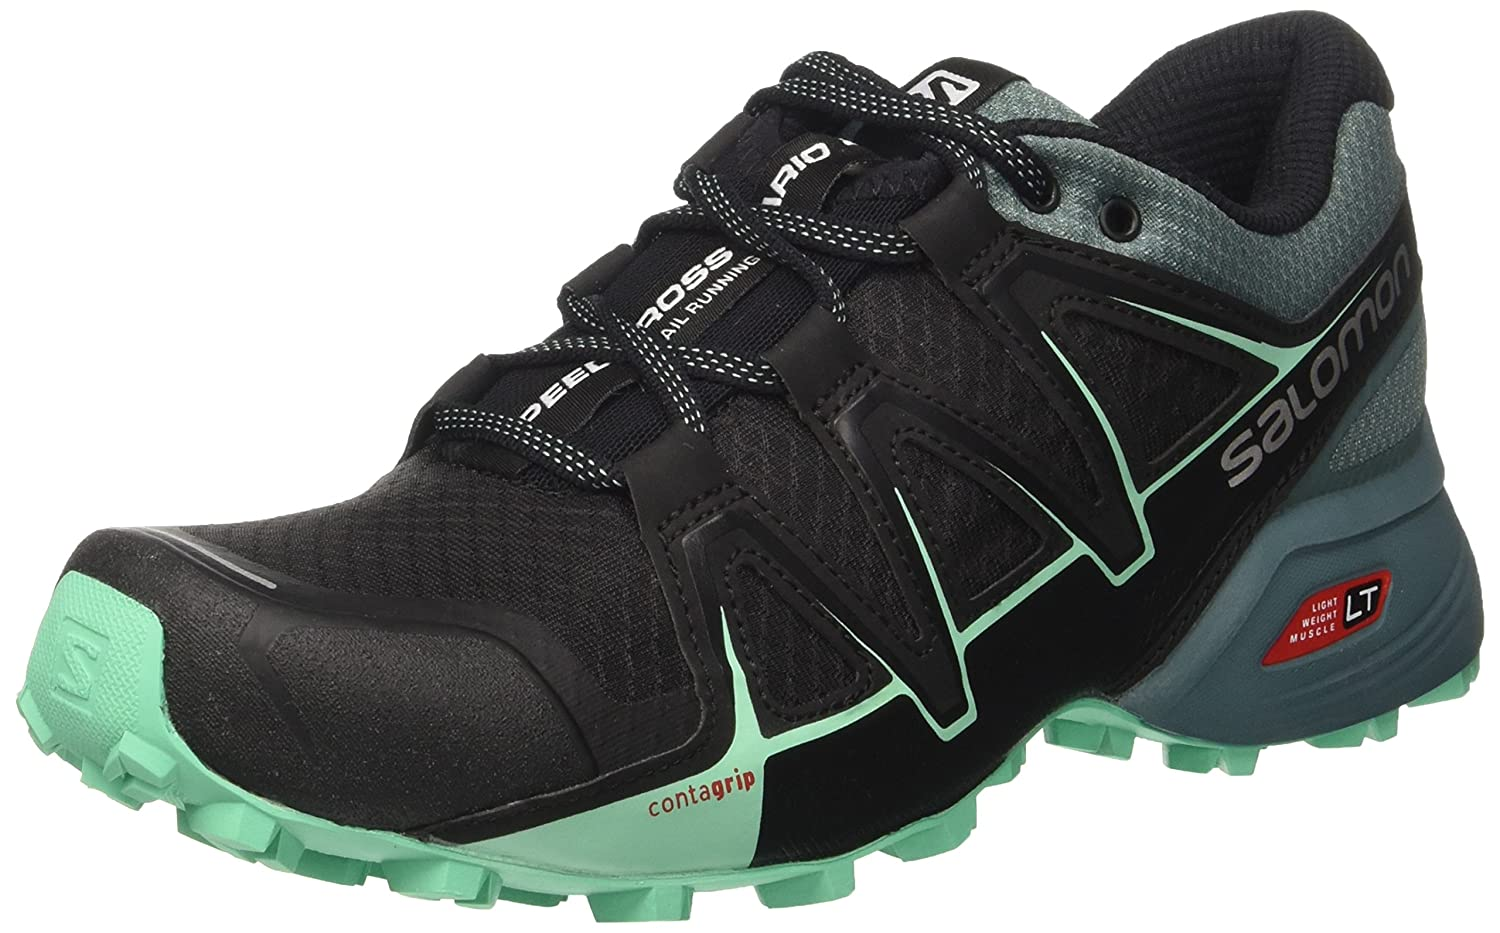 Salomon Women's Speedcross Vario 2 W Backpacking Boot B01MSPTCMG 8 B(M) US|Black